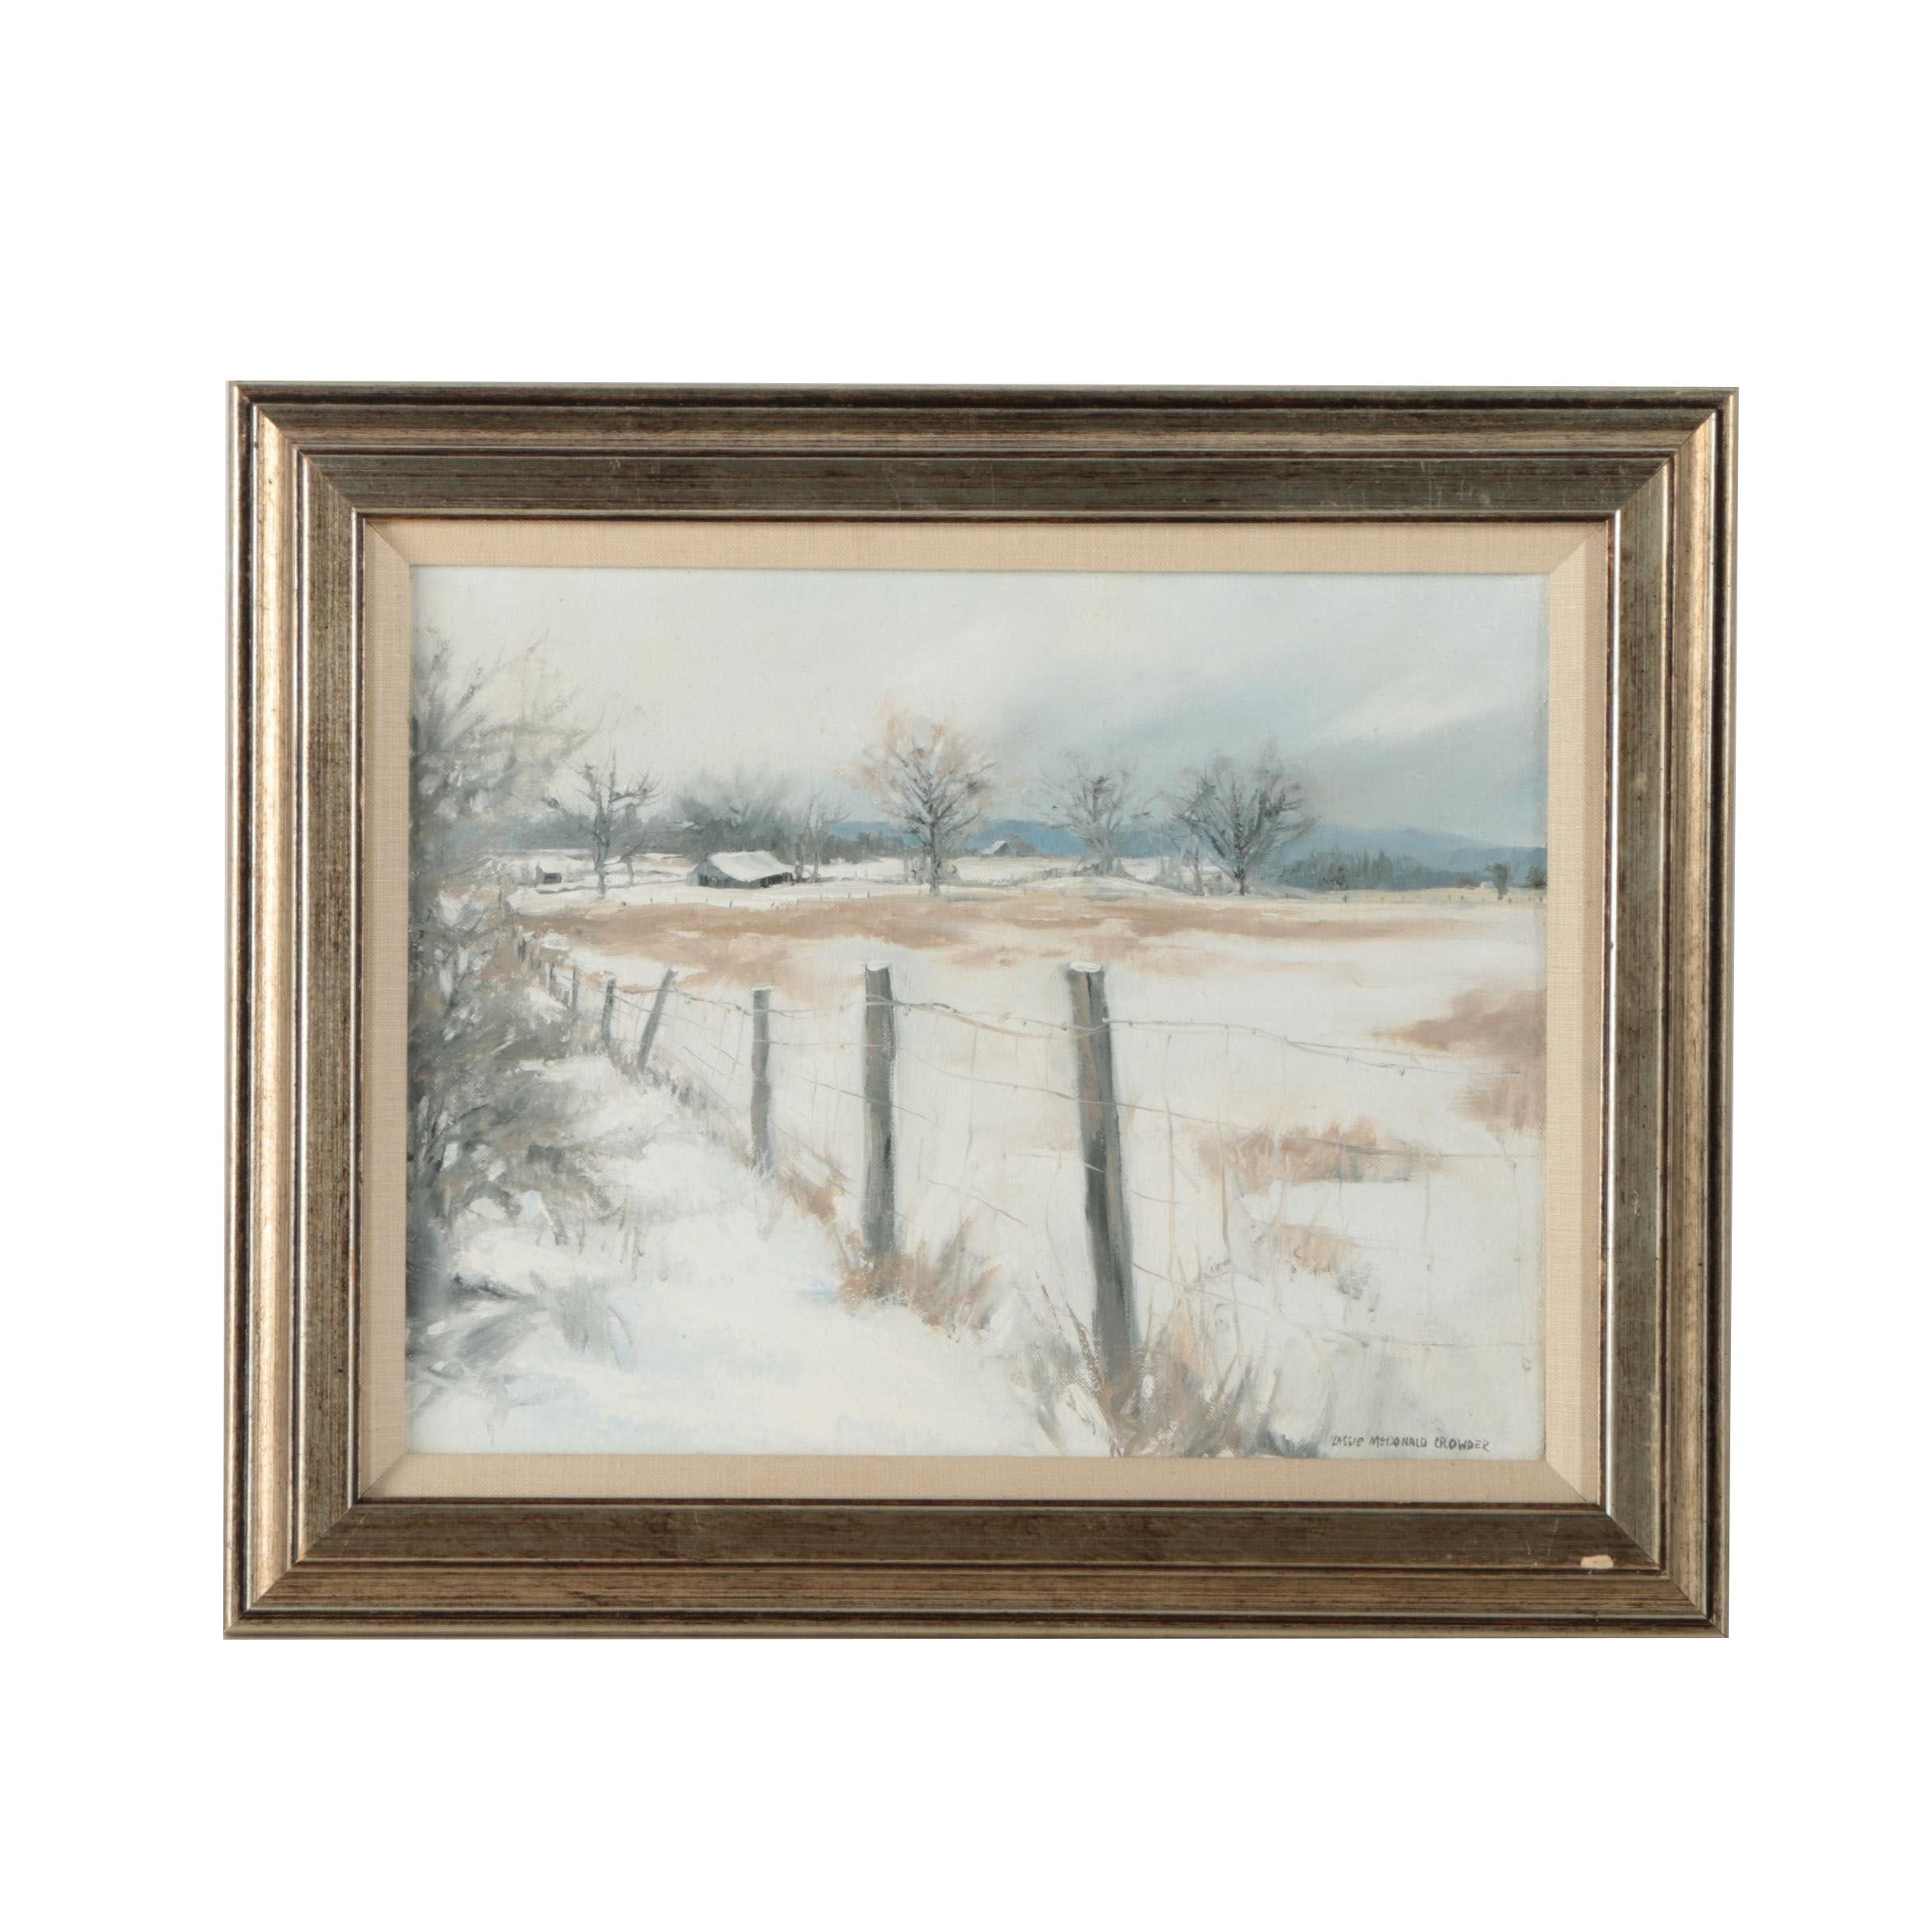 Lassie McDonald Crowder 1982 Oil Painting on Canvas of Rural Winter Landscape